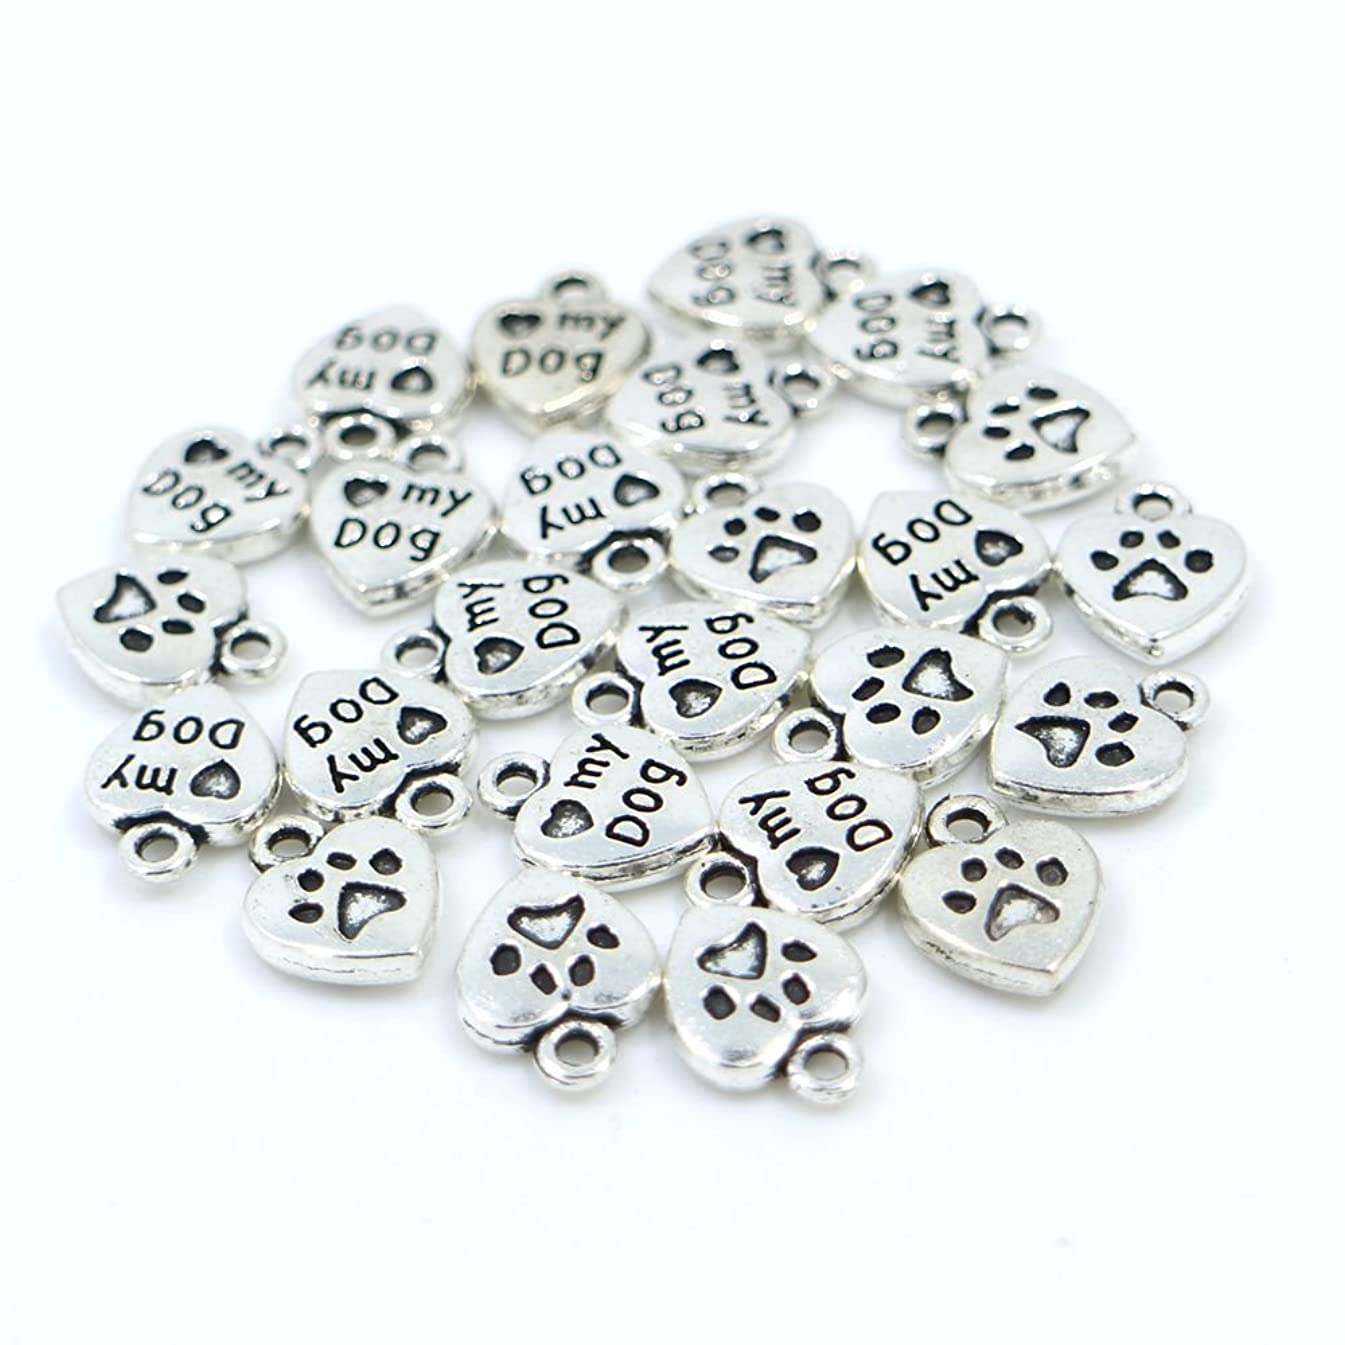 100pcs Mixed Color Vintage My Dog Paw Heart Shape Charms Pendant, DIY Crafts, Jewelry Making Charms Pendant (Antiqued Silver)